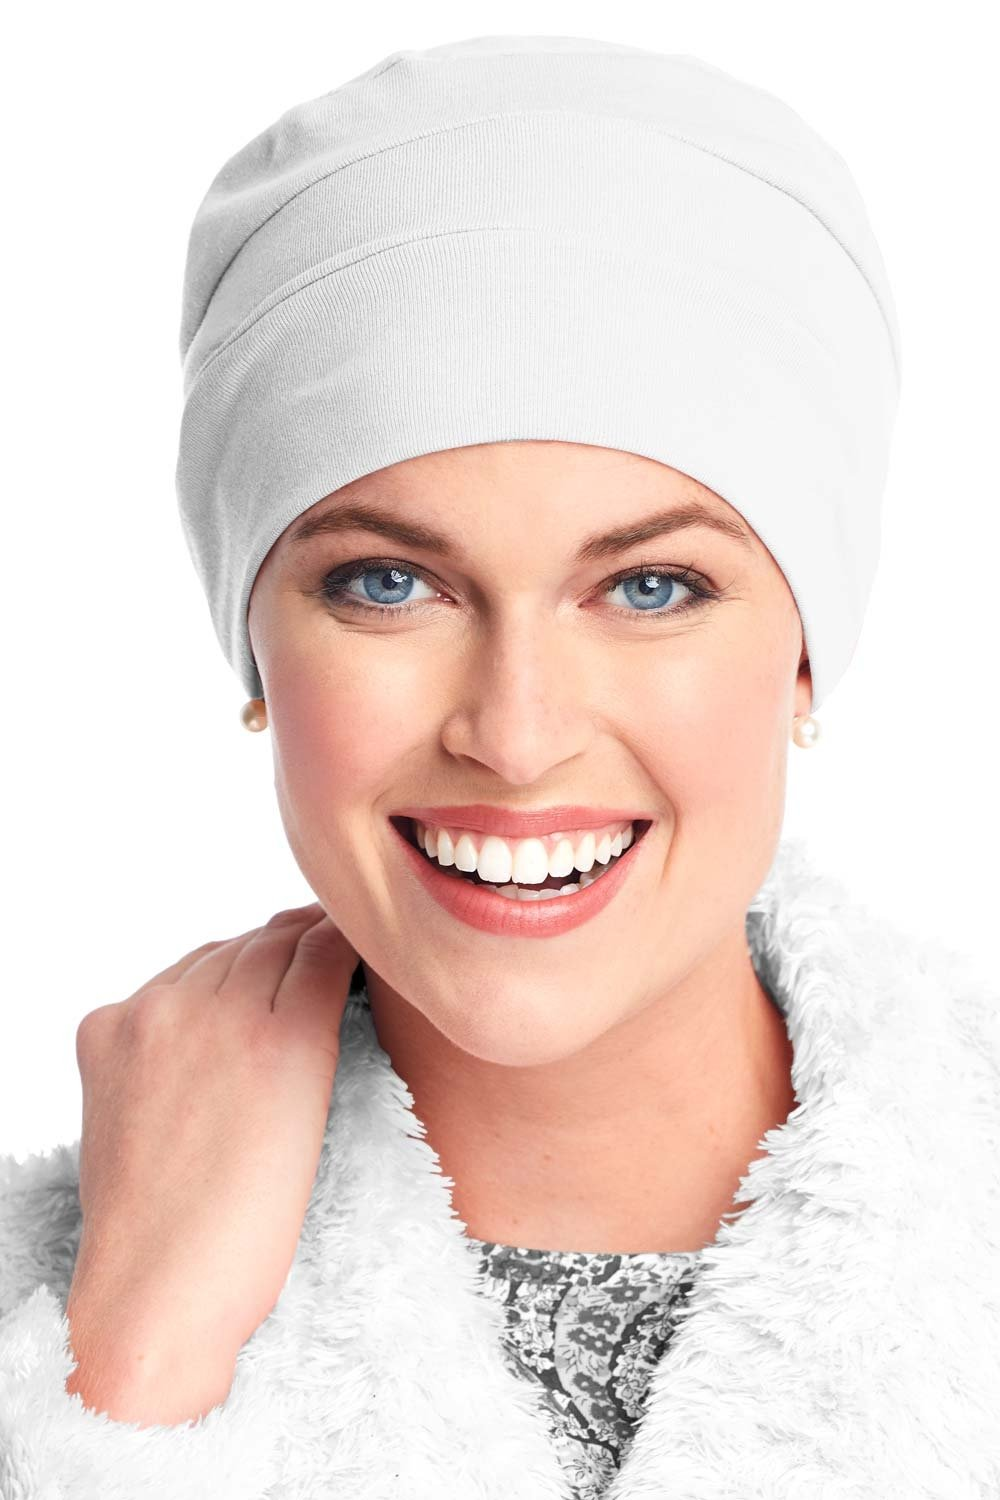 Headcovers Unlimited Three Seam Cancer Sleeping Turban for Women in Chemotherapy White